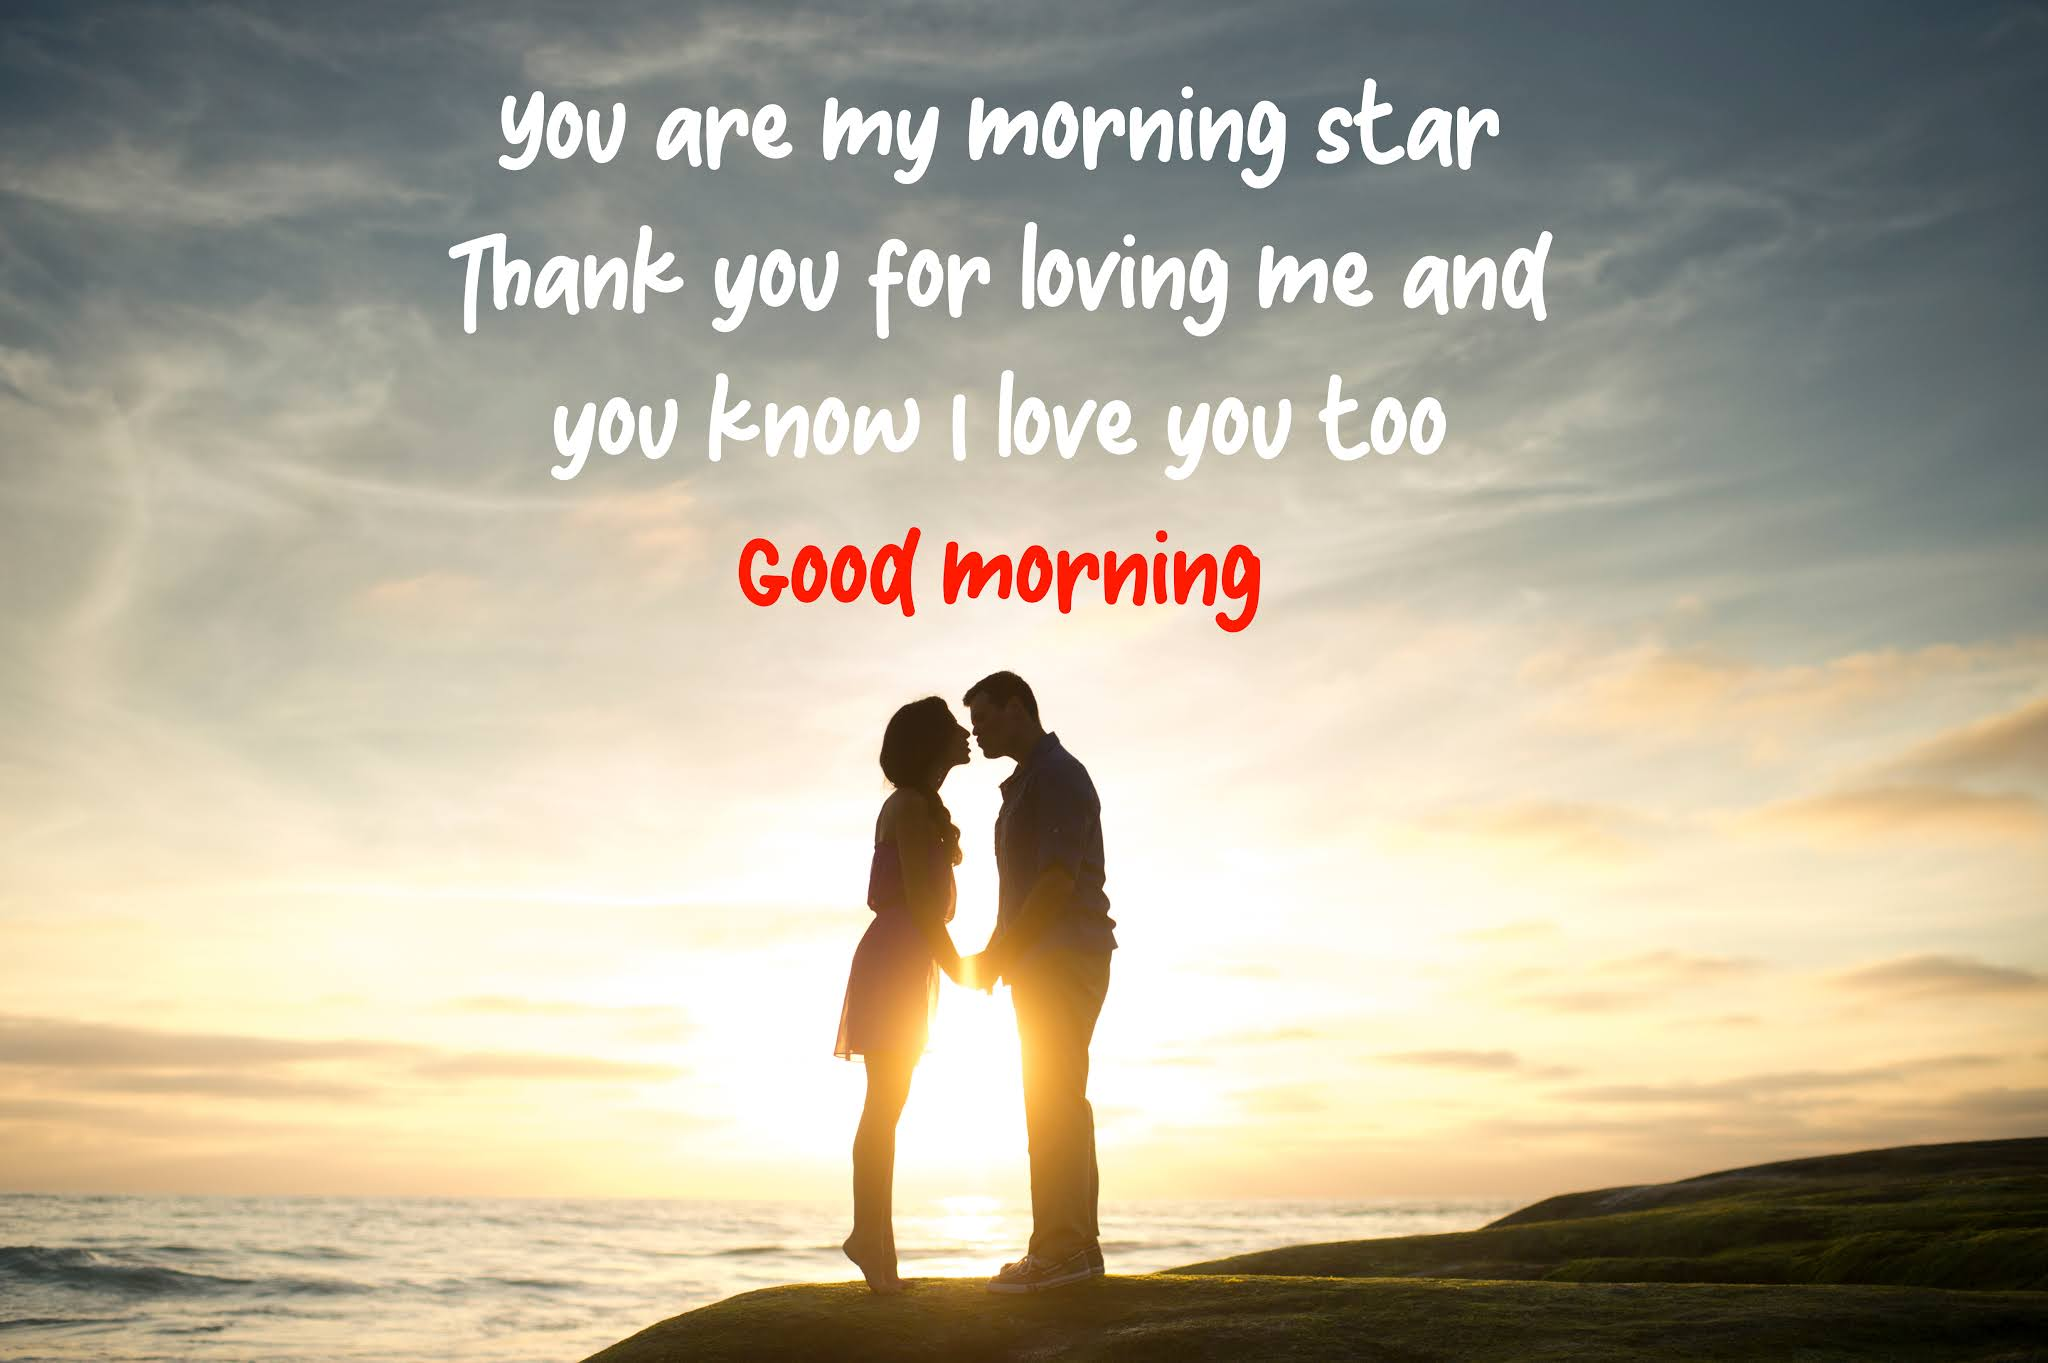 Romantic morning love quotes